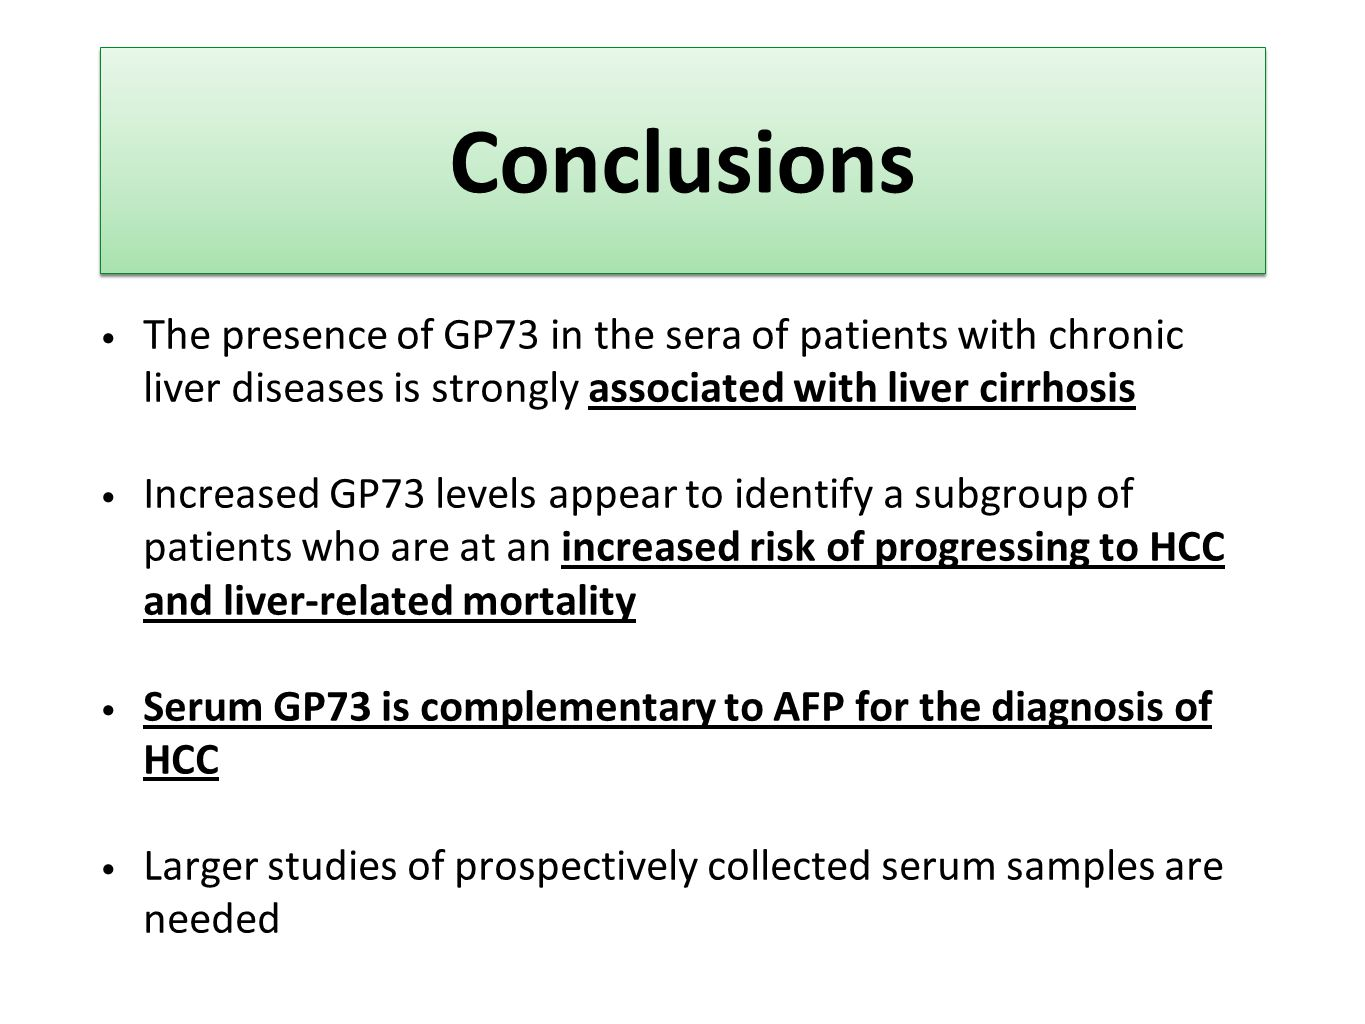 Conclusions The presence of GP73 in the sera of patients with chronic liver diseases is strongly associated with liver cirrhosis Increased GP73 levels appear to identify a subgroup of patients who are at an increased risk of progressing to HCC and liver-related mortality Serum GP73 is complementary to AFP for the diagnosis of HCC Larger studies of prospectively collected serum samples are needed